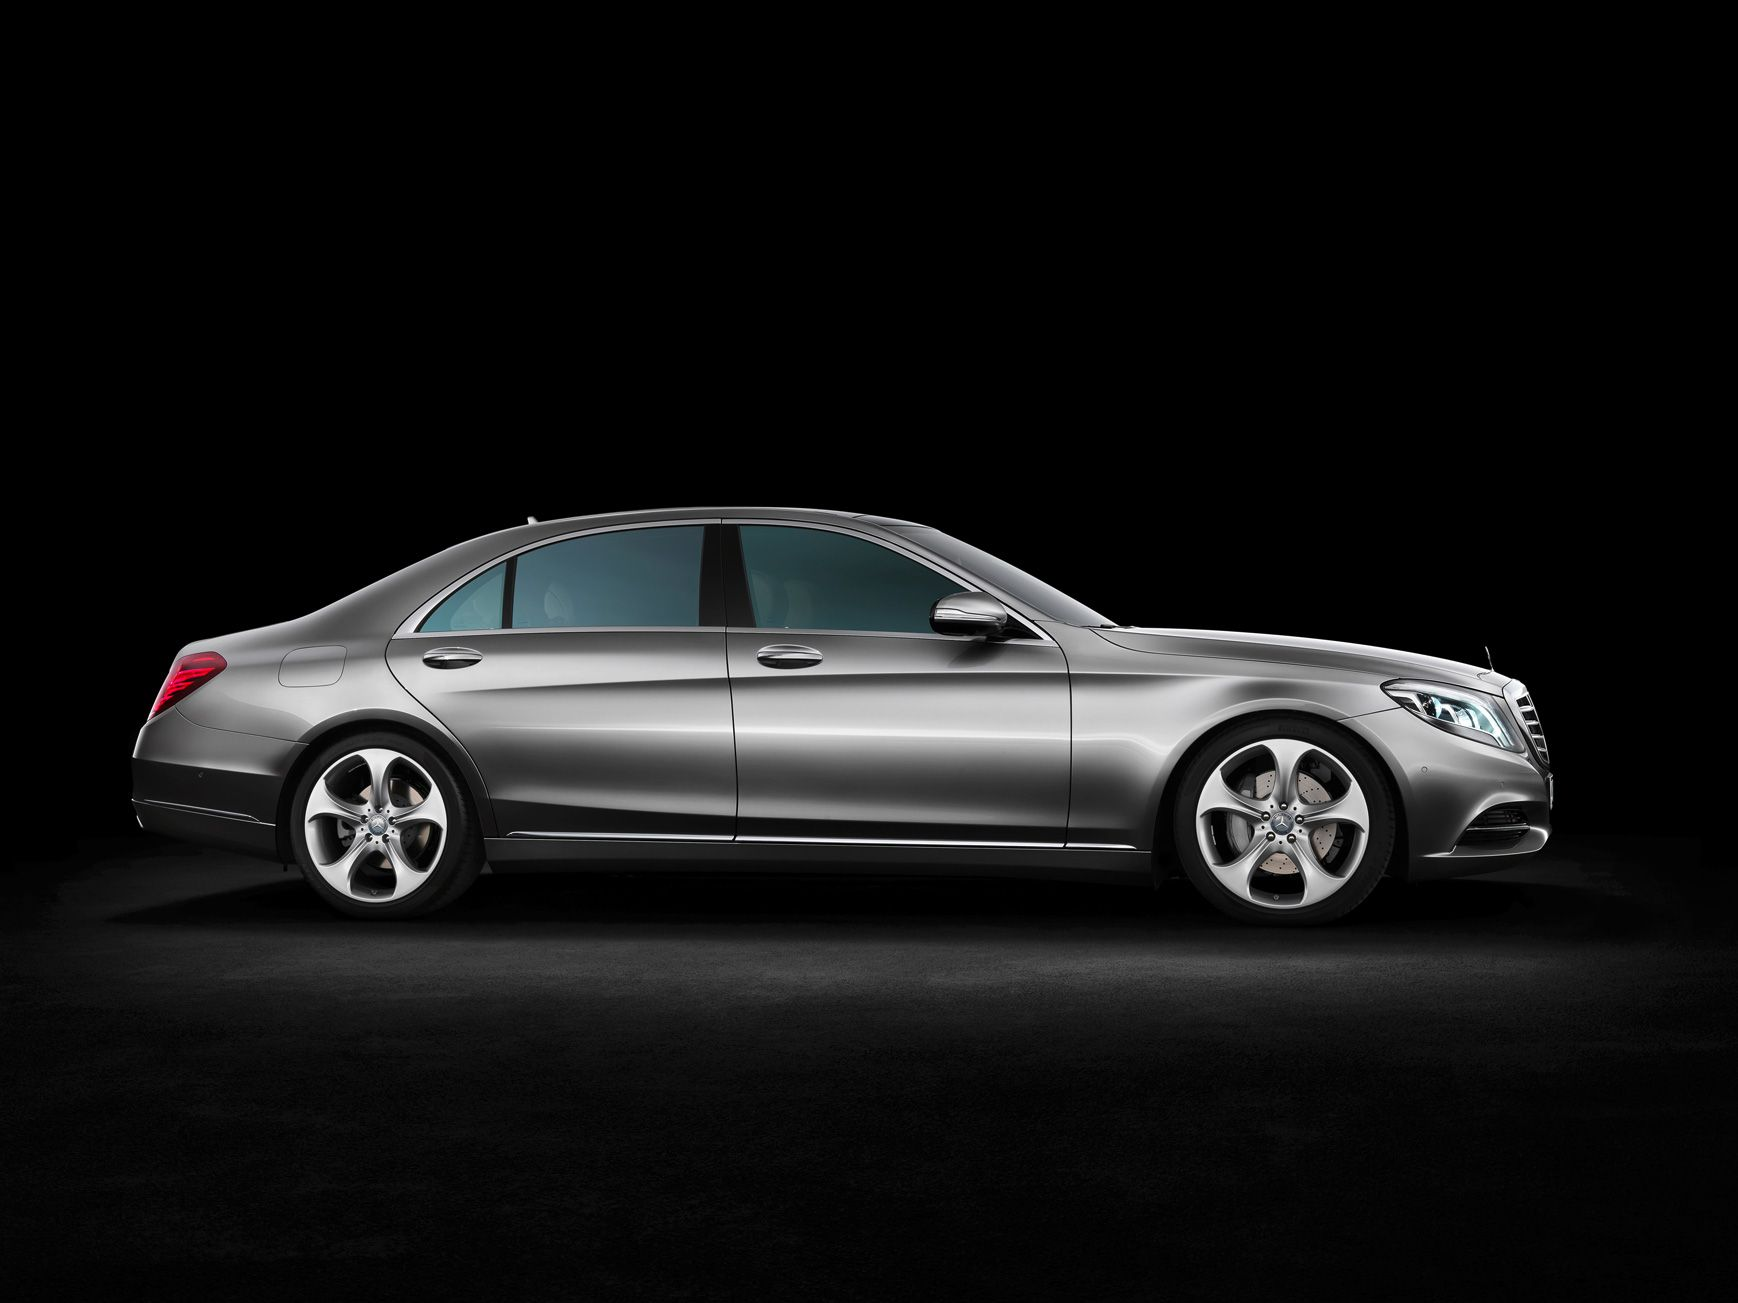 Presenting the all-new 2014 S-Class. It's the best car in the world. Again.